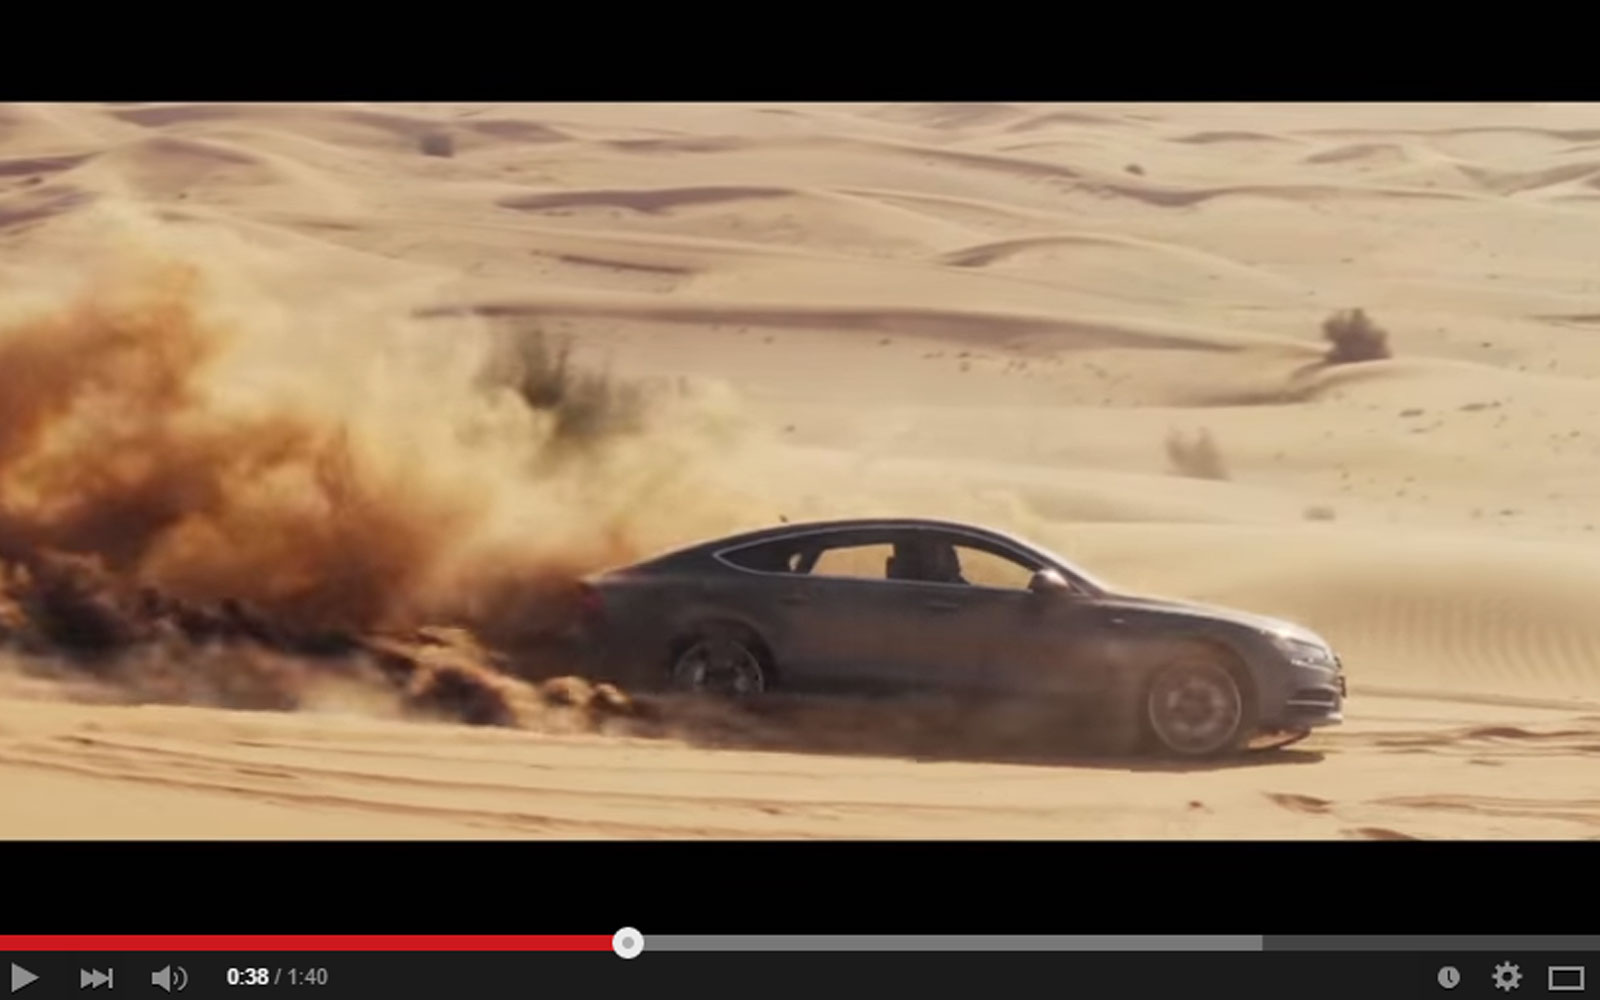 The Audi A7 Sportback On The Sand Dunes Is A Wrong Thing To Do But It's Awesome